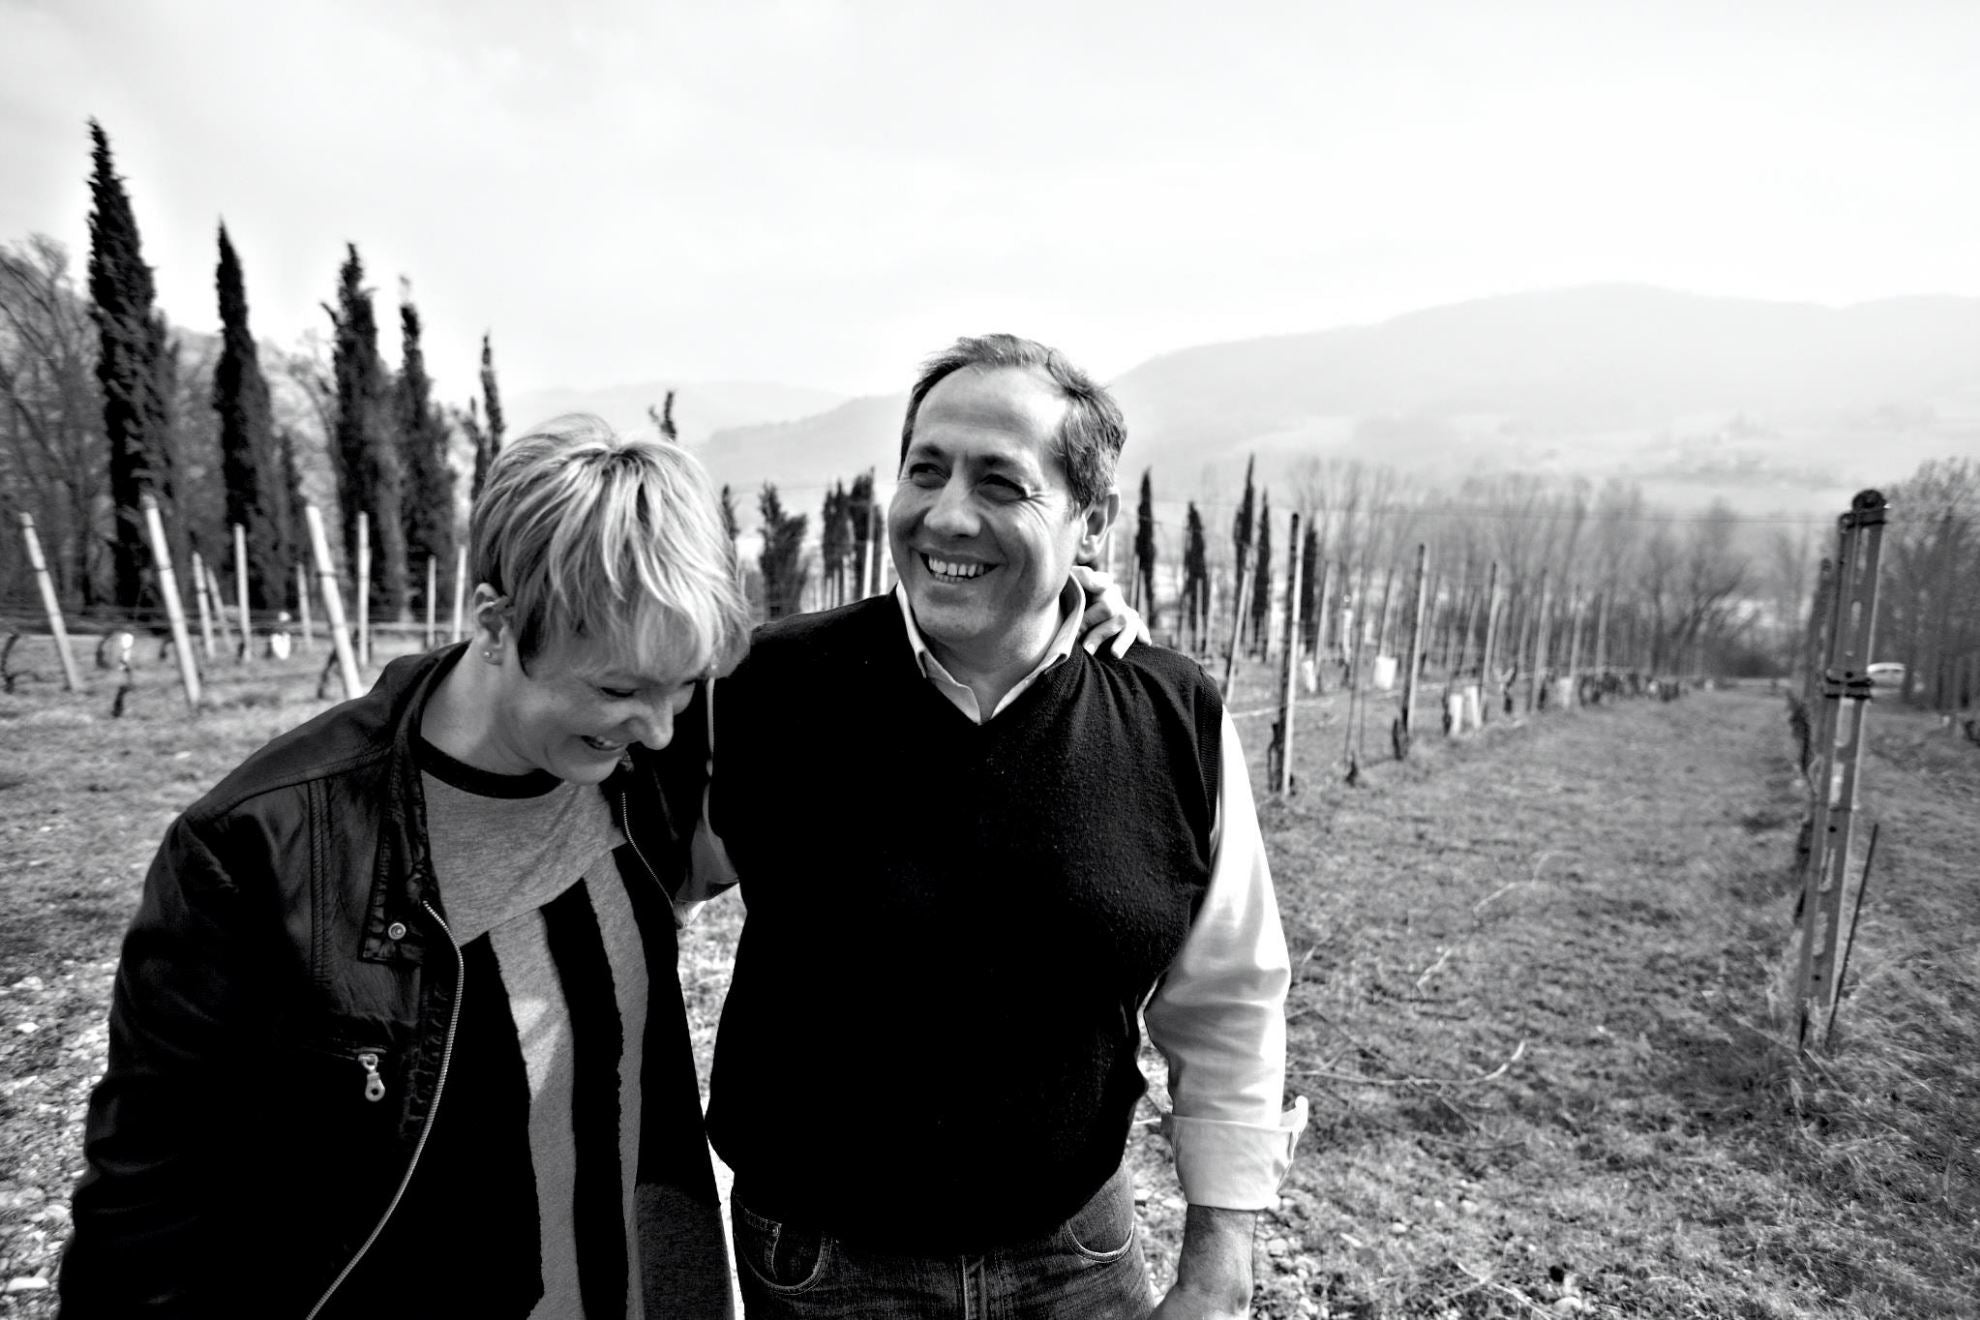 PODERE PRADAROLO - A FAIRYTALE OF TIMELESS MASTERY AND PASSION